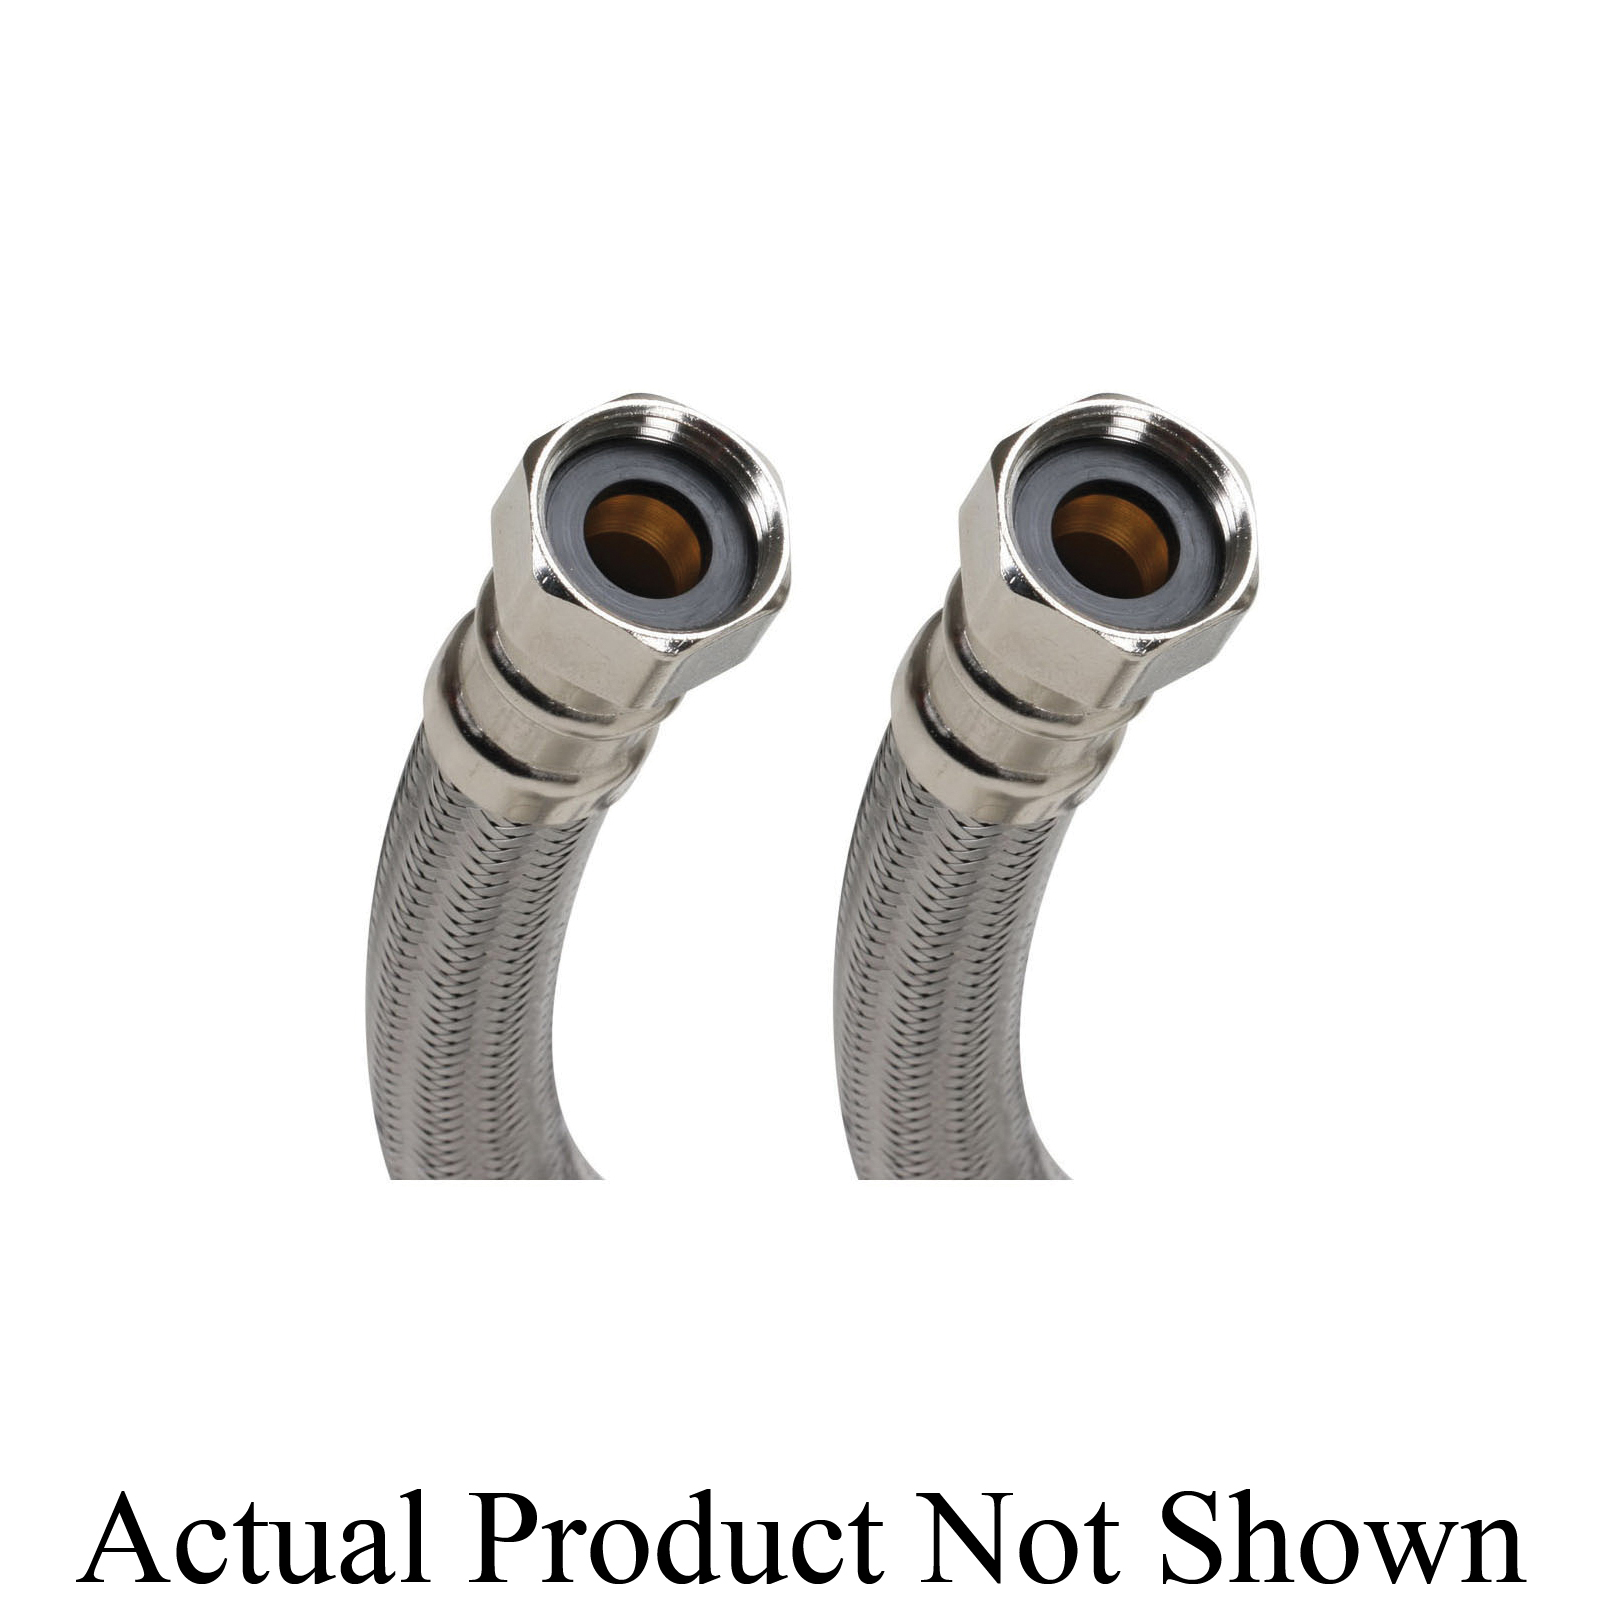 Fluidmaster® B1H24 Water Heater Connector, 3/4 in Nominal, FNPT End Style, 24 in L, 125 psi Working, 304 Stainless Steel, Import